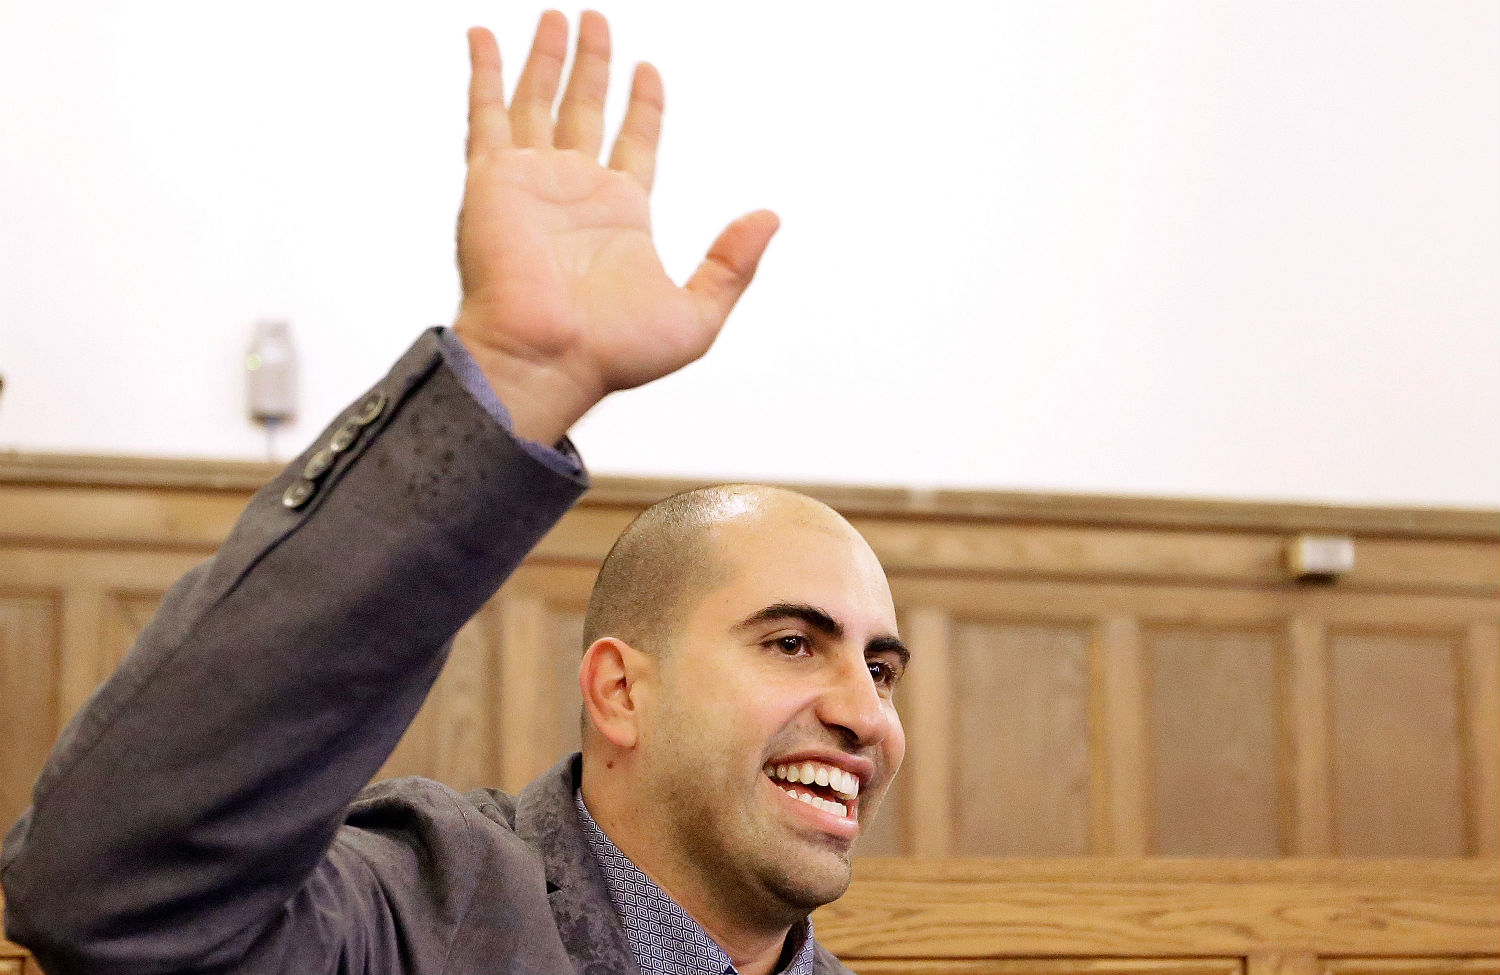 April 8: Steven Salaita 11AM-1PM @ TESC